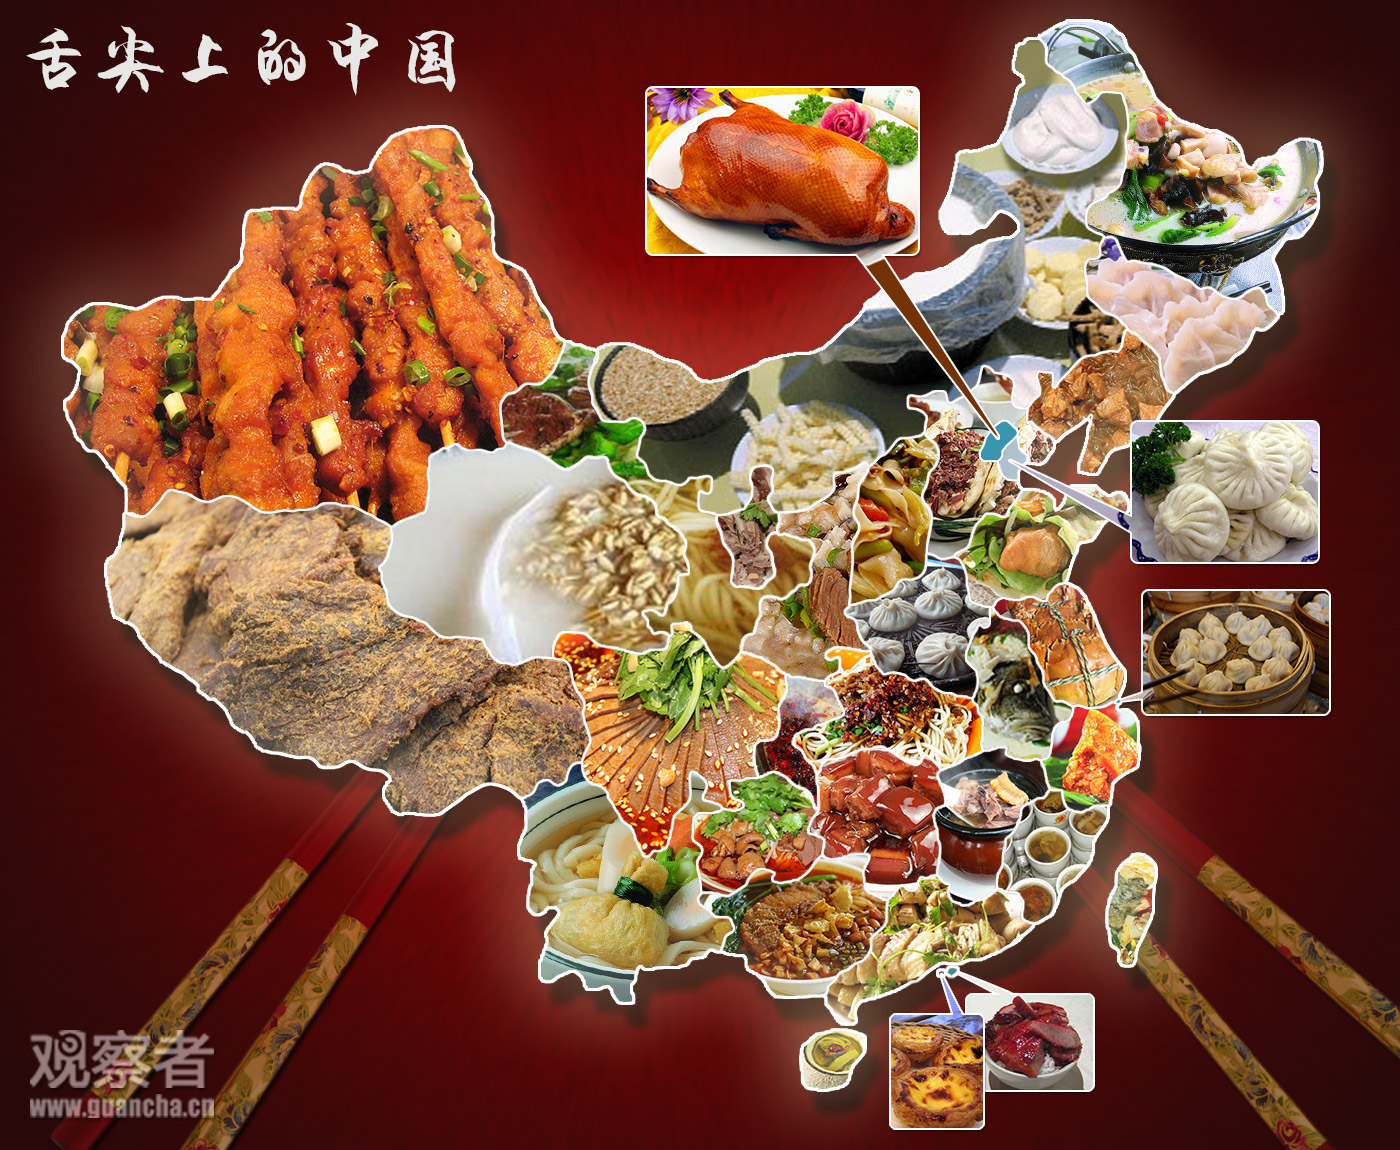 Artifact 3 is food art aad 250 art and human value for Cuisine of china